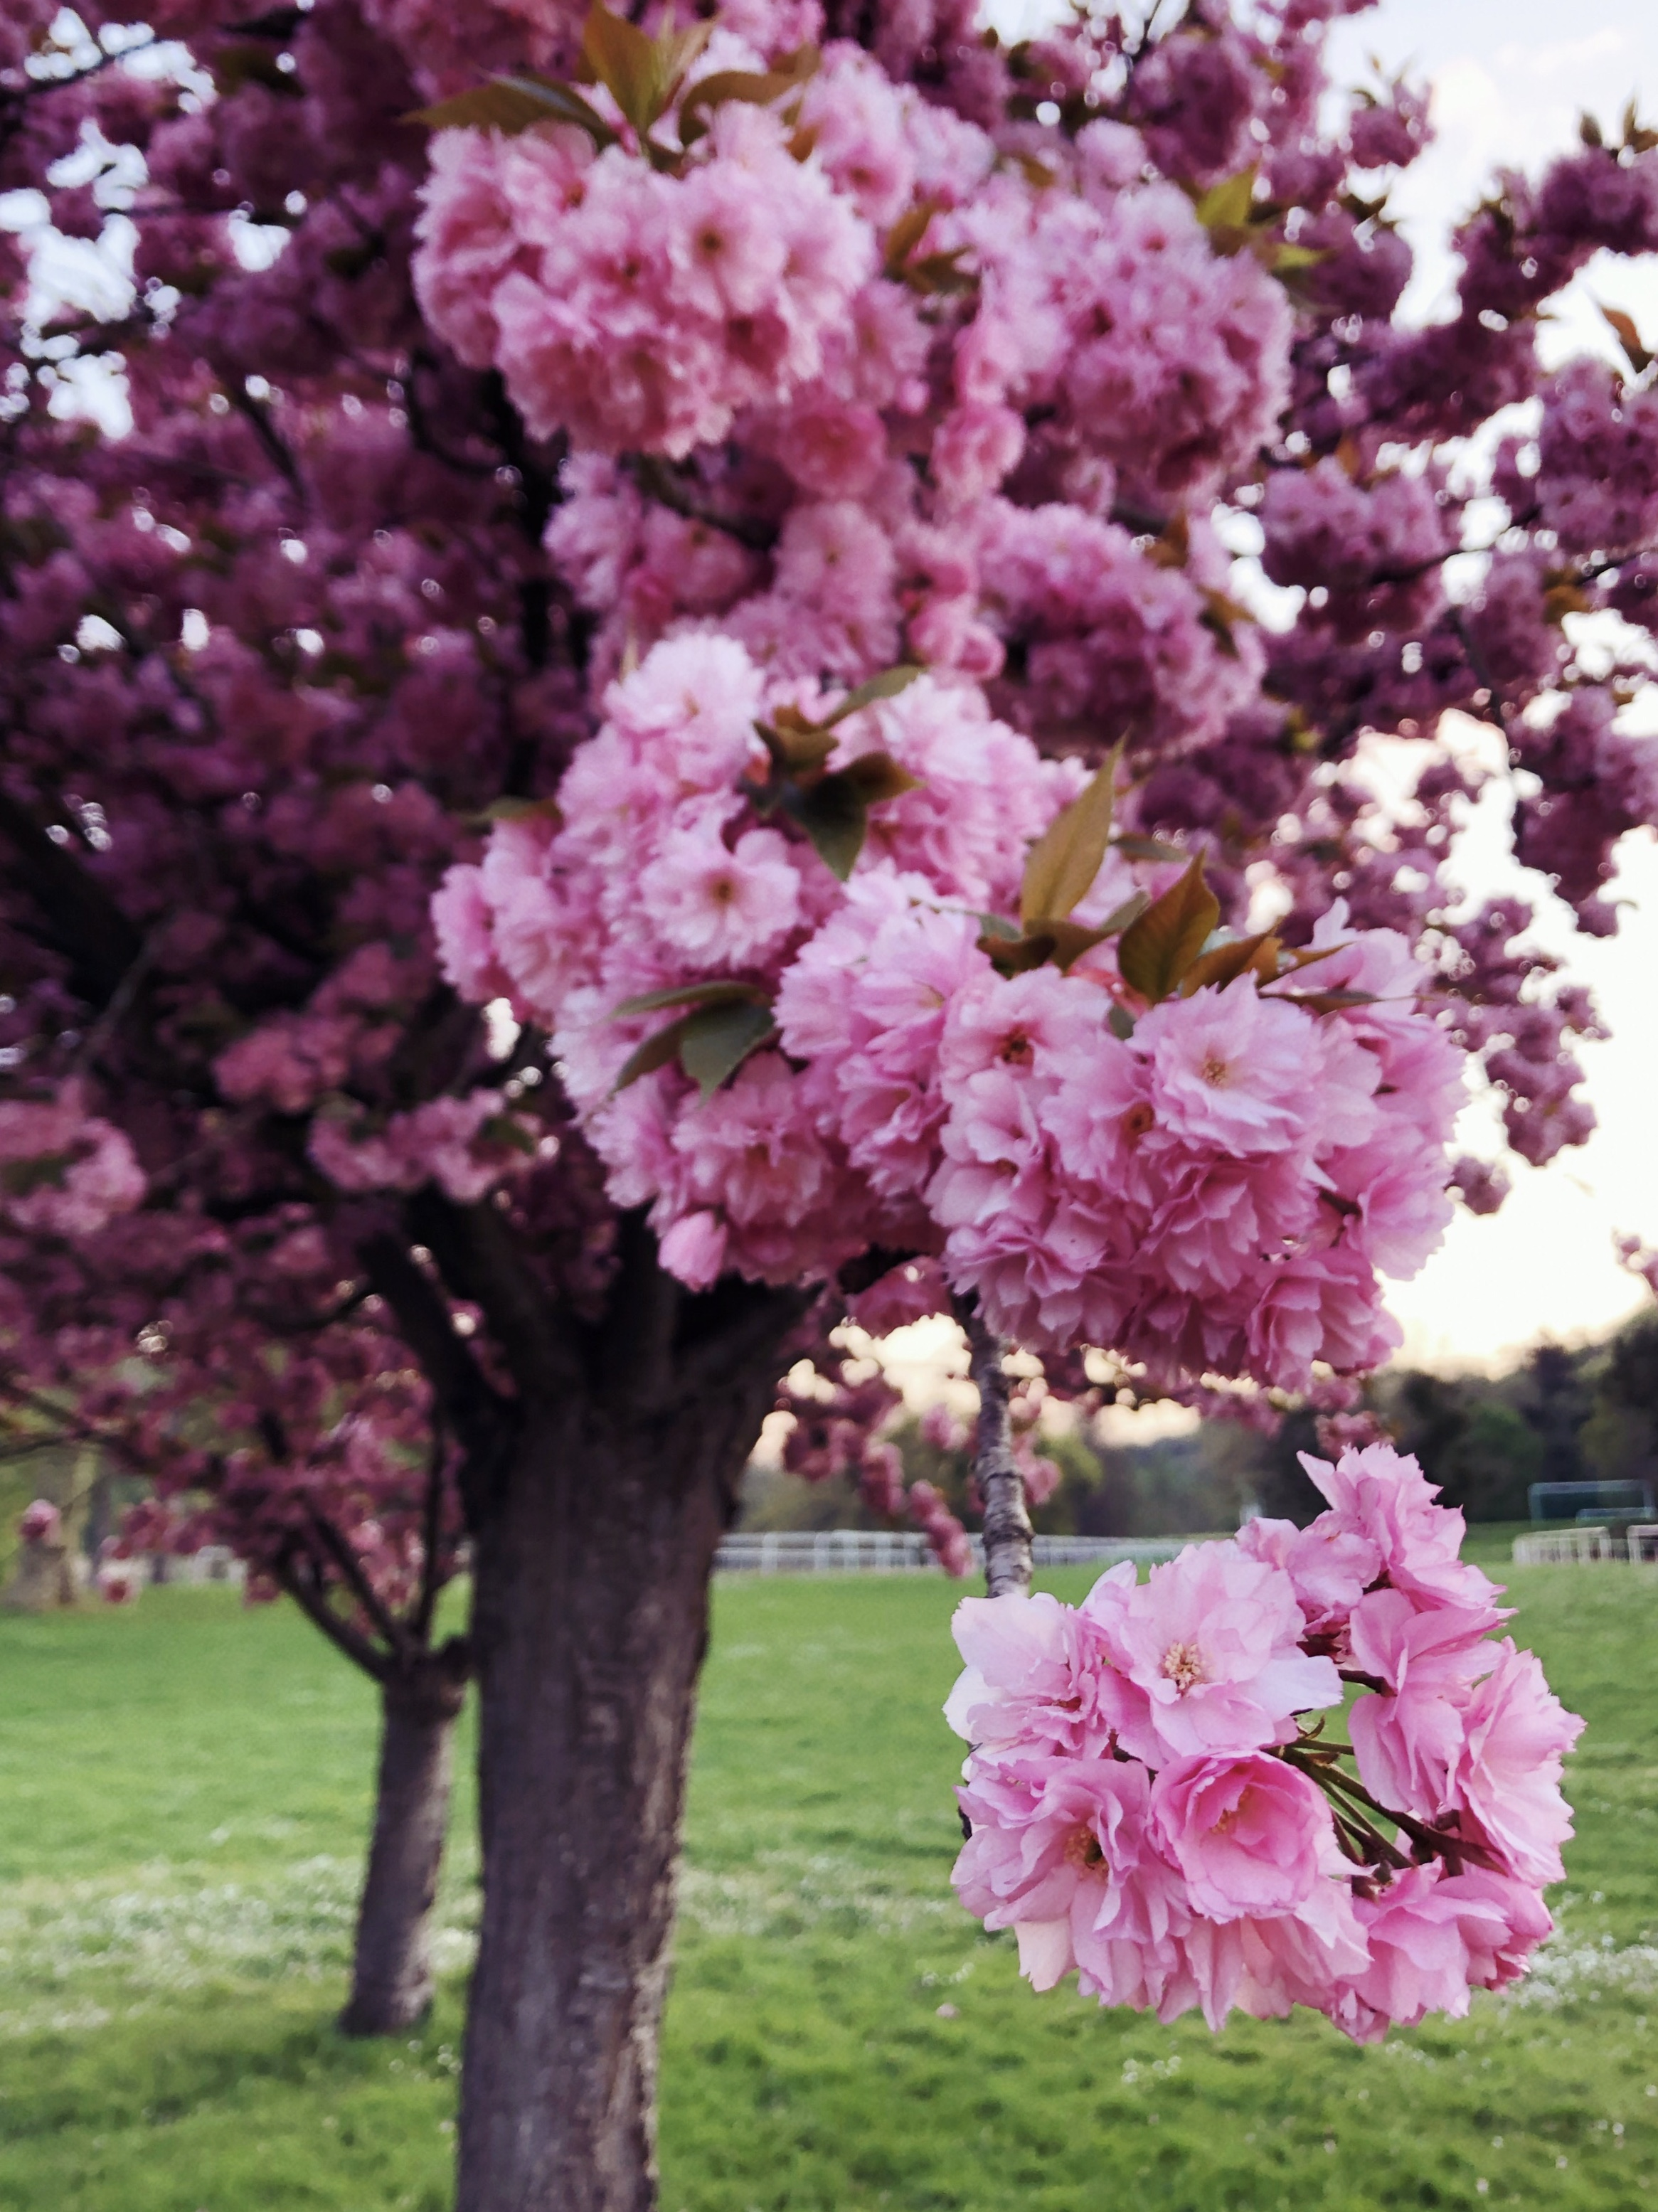 The same cherry blossom as above, but a close-up of the vibrant, slightly less pastel pink flowers.